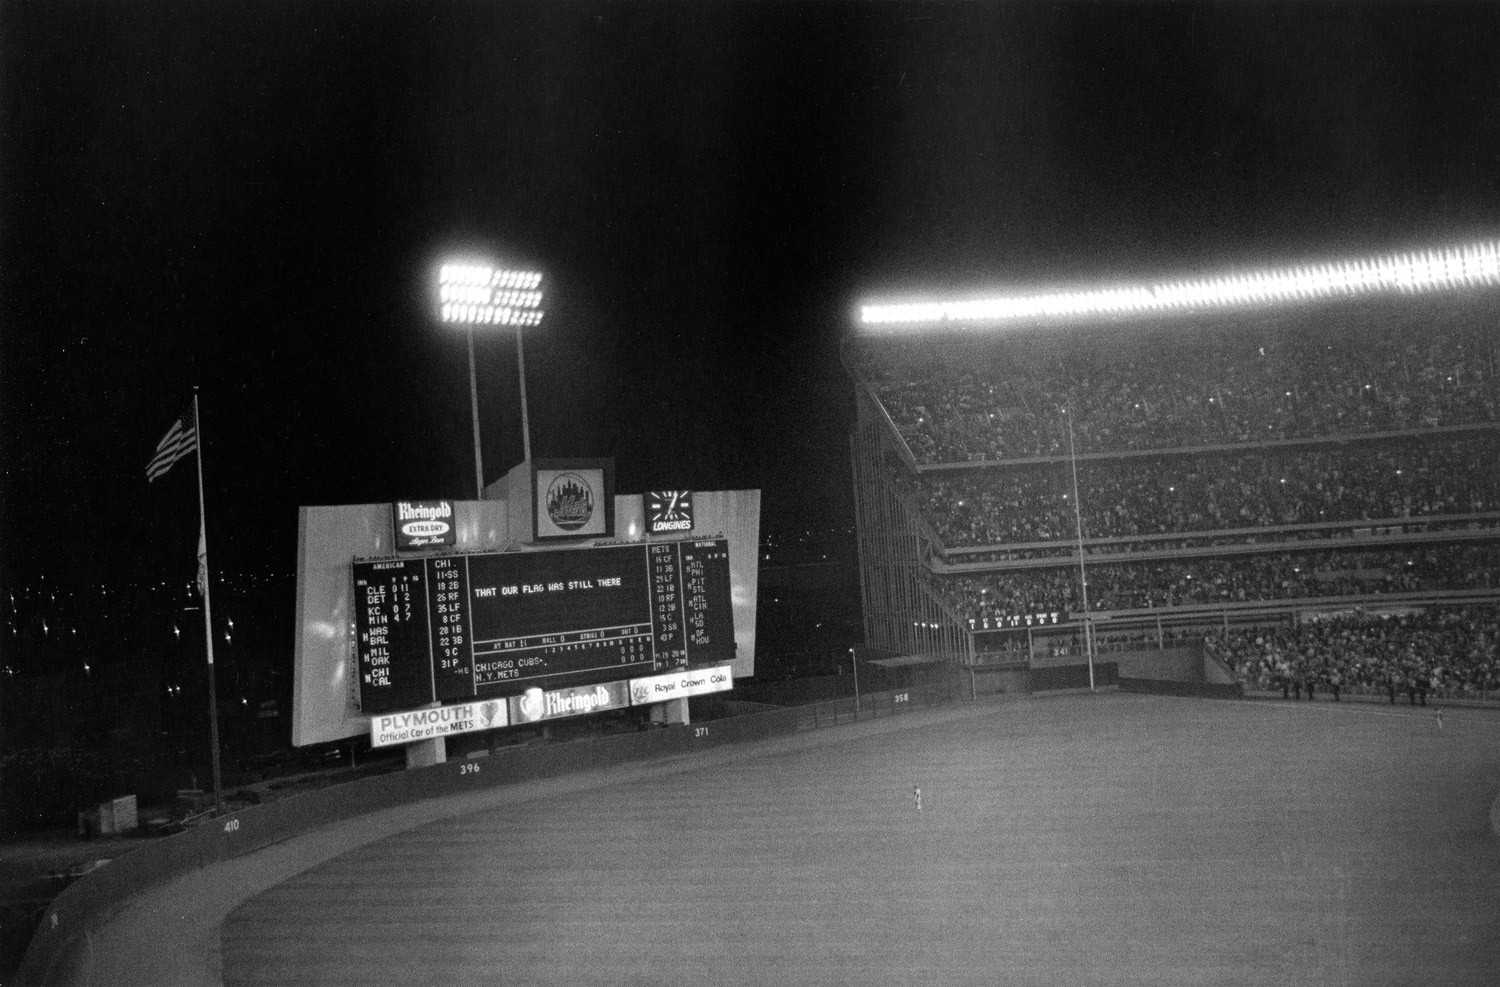 Tod Papageorge, Last game of the season (Chicago vs. New York), Shea Stadium, New York, October 1, 1970